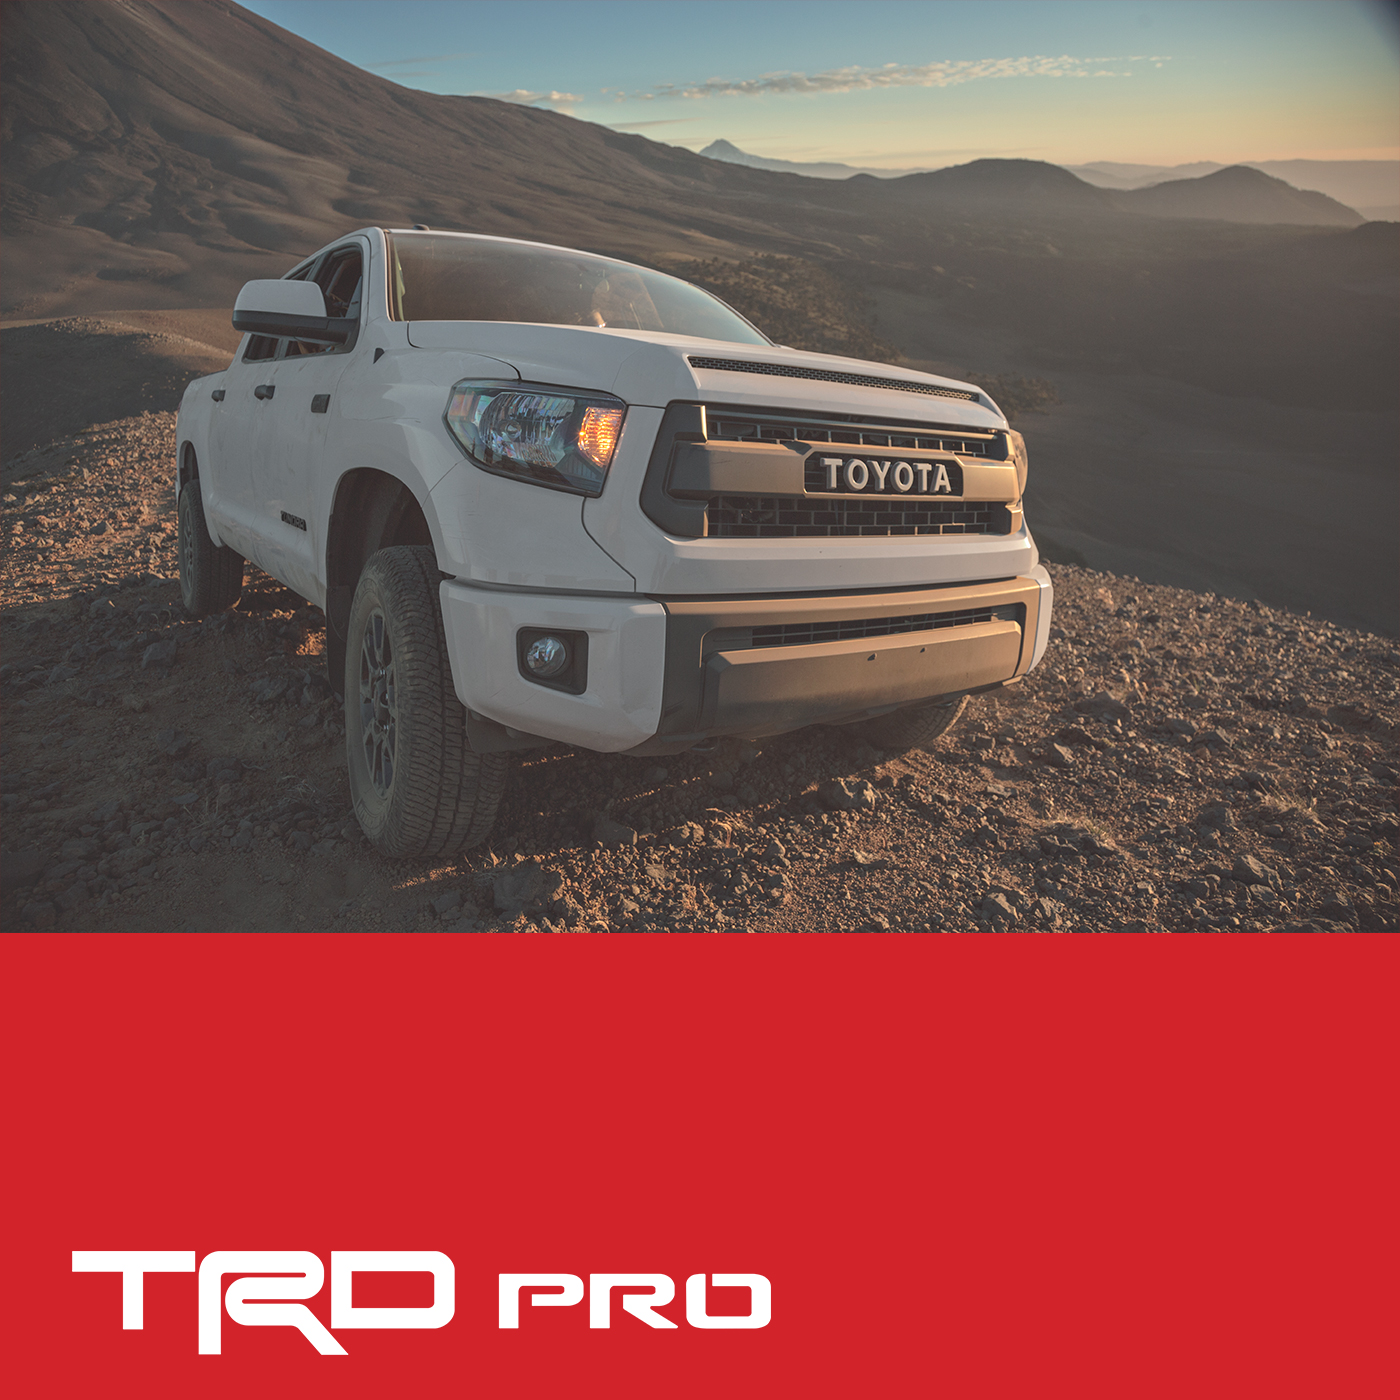 TOYOTA TRD PRO 2015 | VOLCANO HOPPING IN CHILE